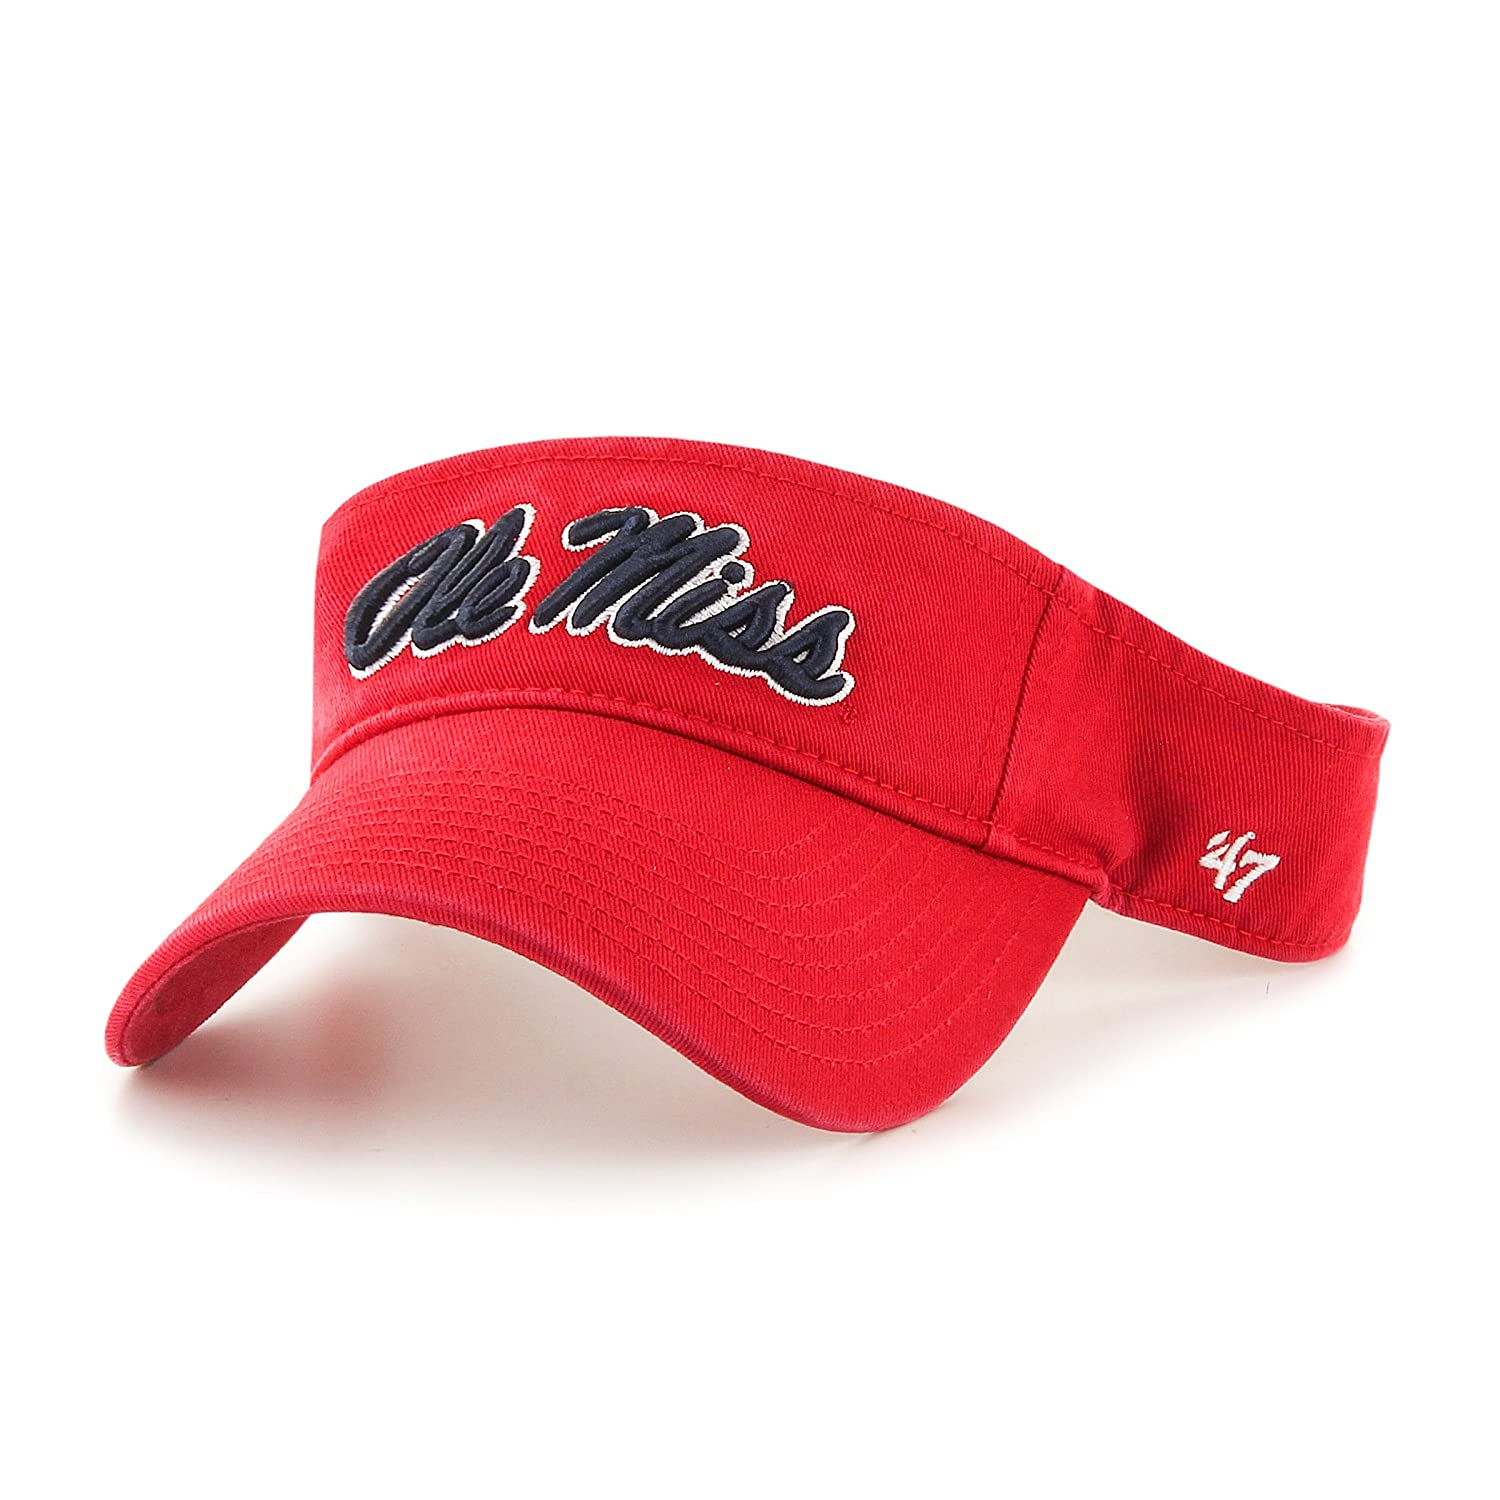 '47 NCAA Clean Up Adjustable Visor